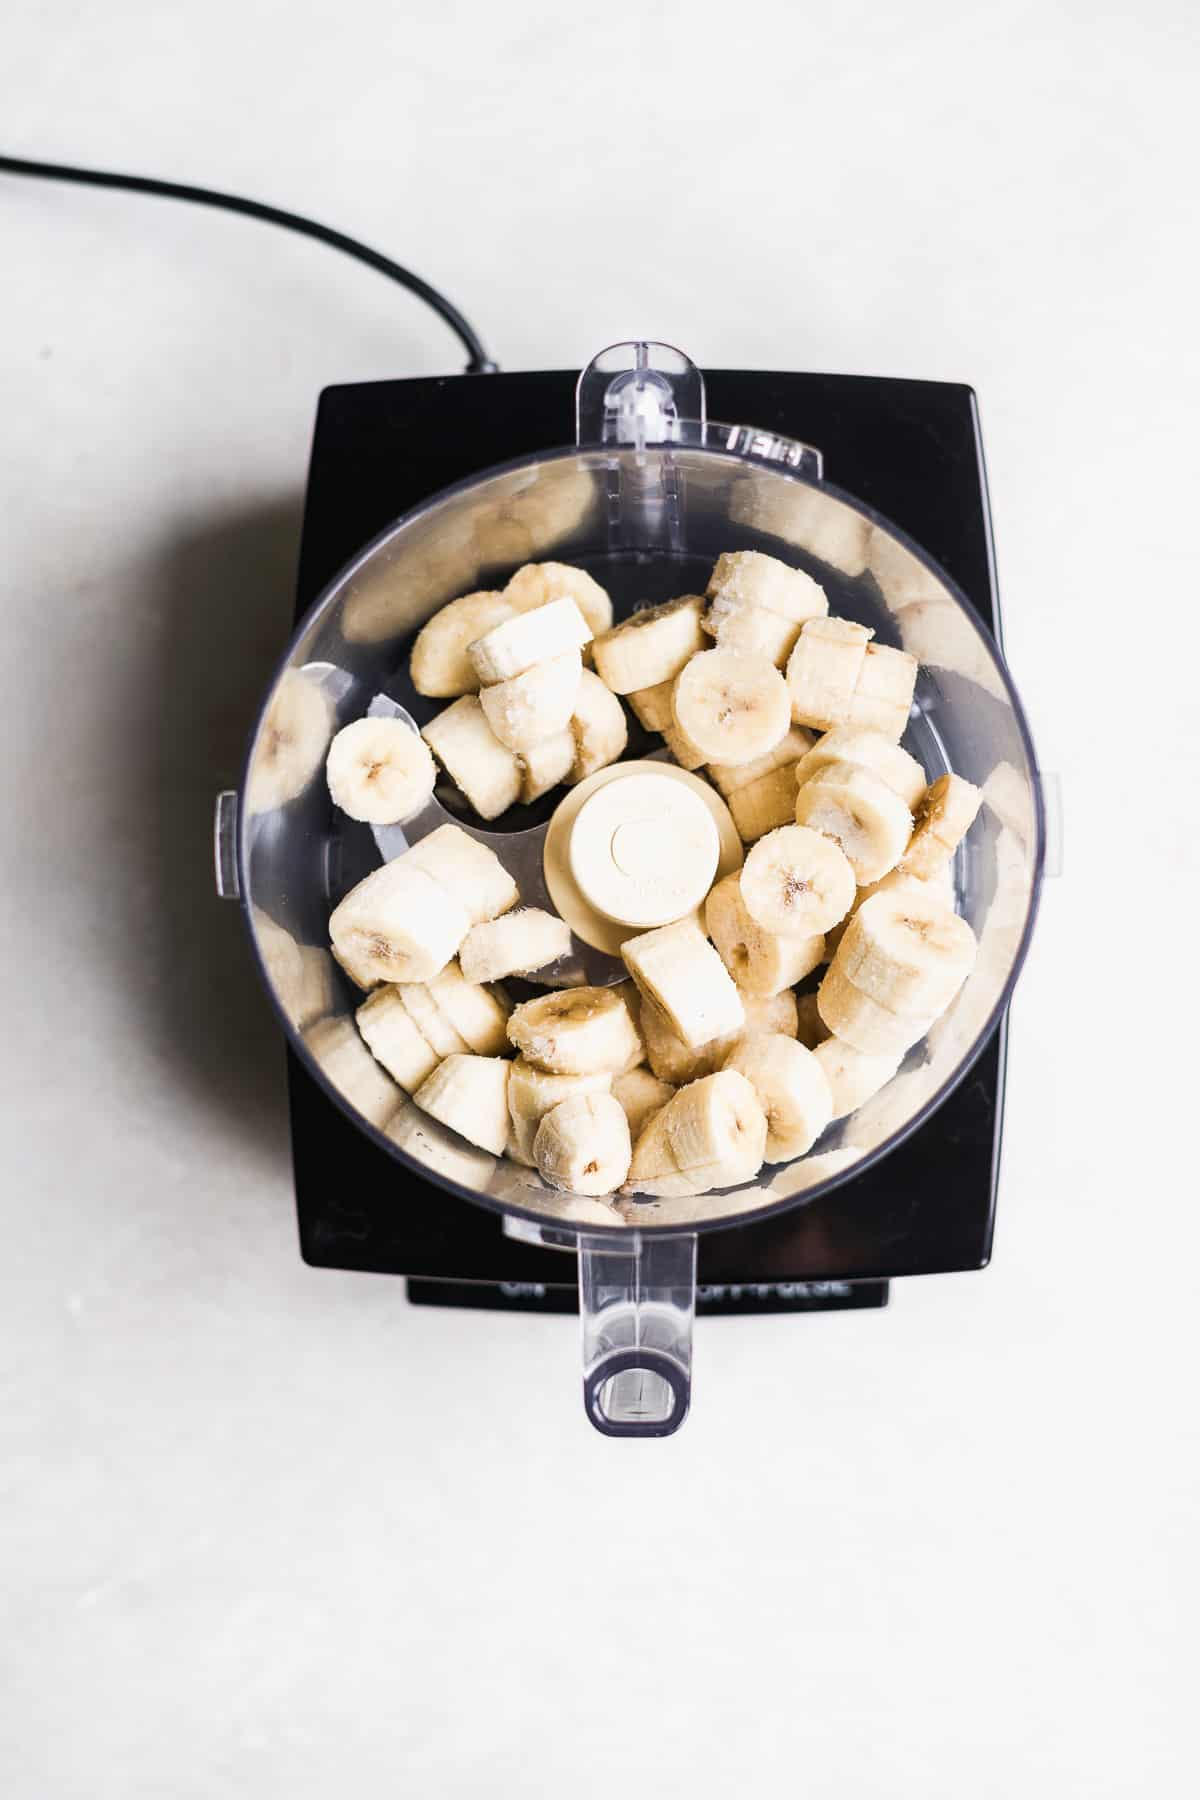 Frozen banana slices in a food processor on a white surface.